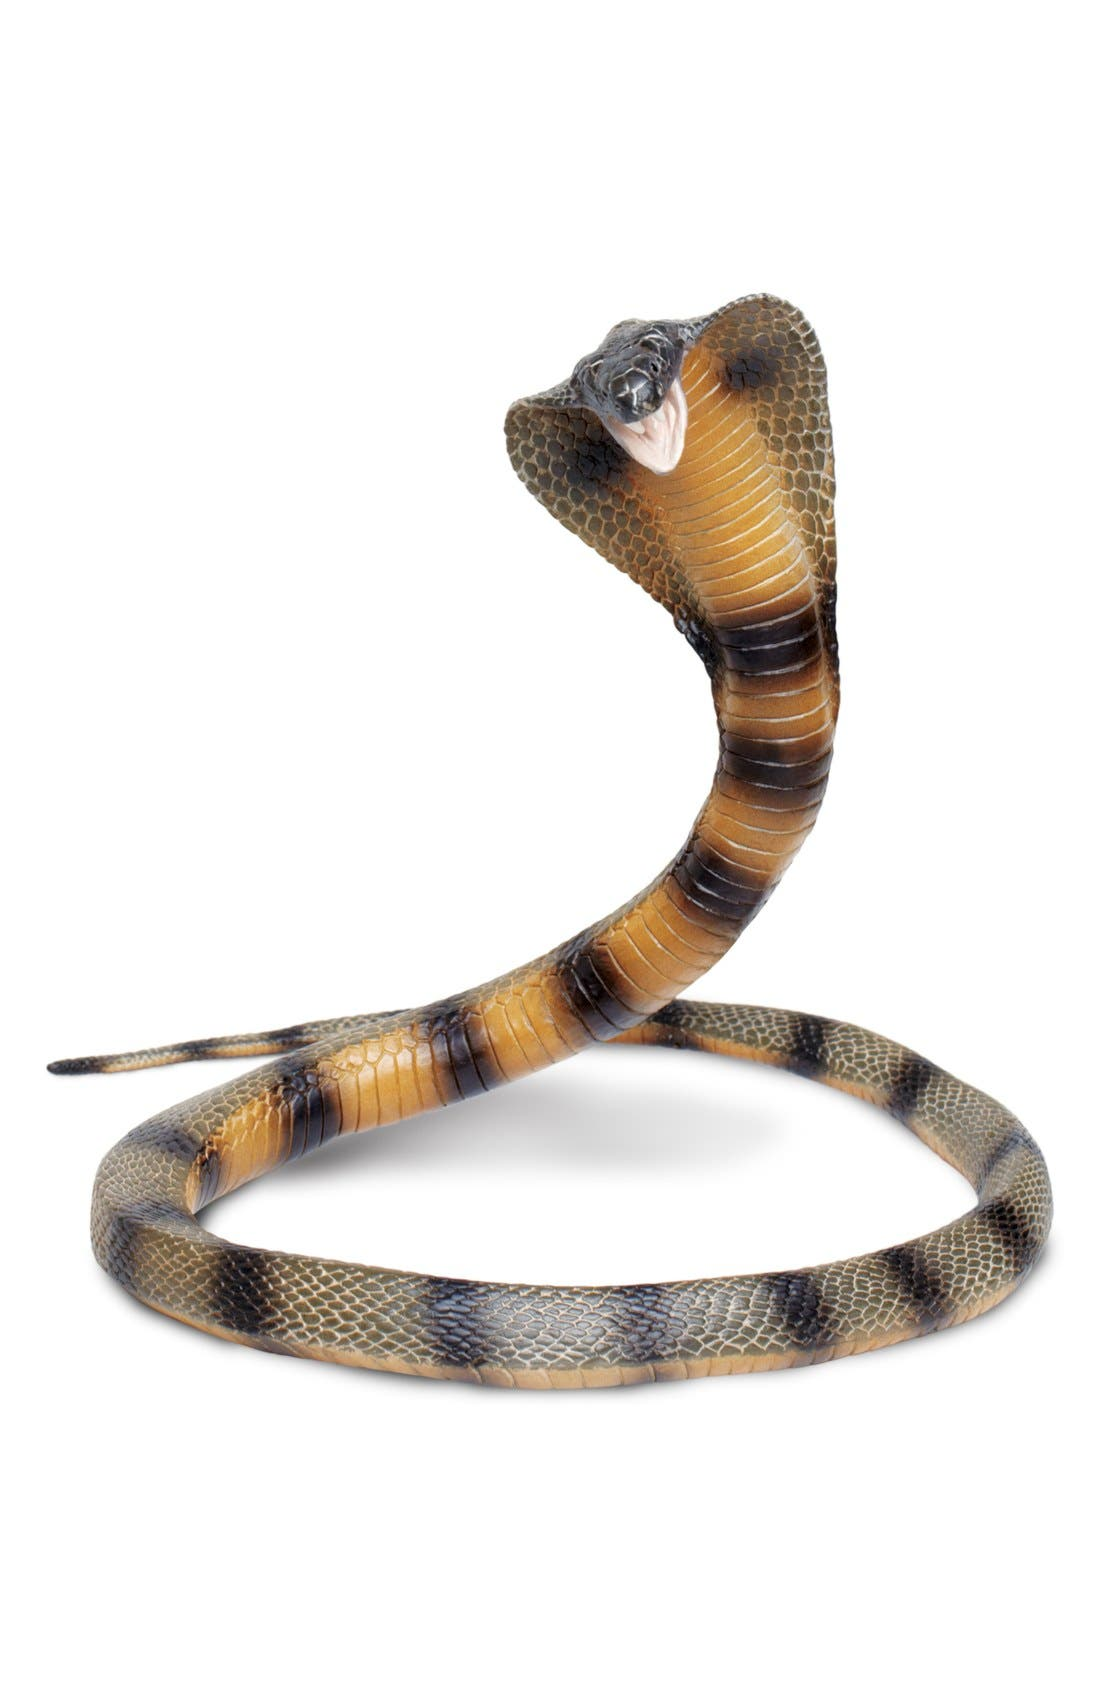 SAFARI LTD. Cobra Snake Figurine